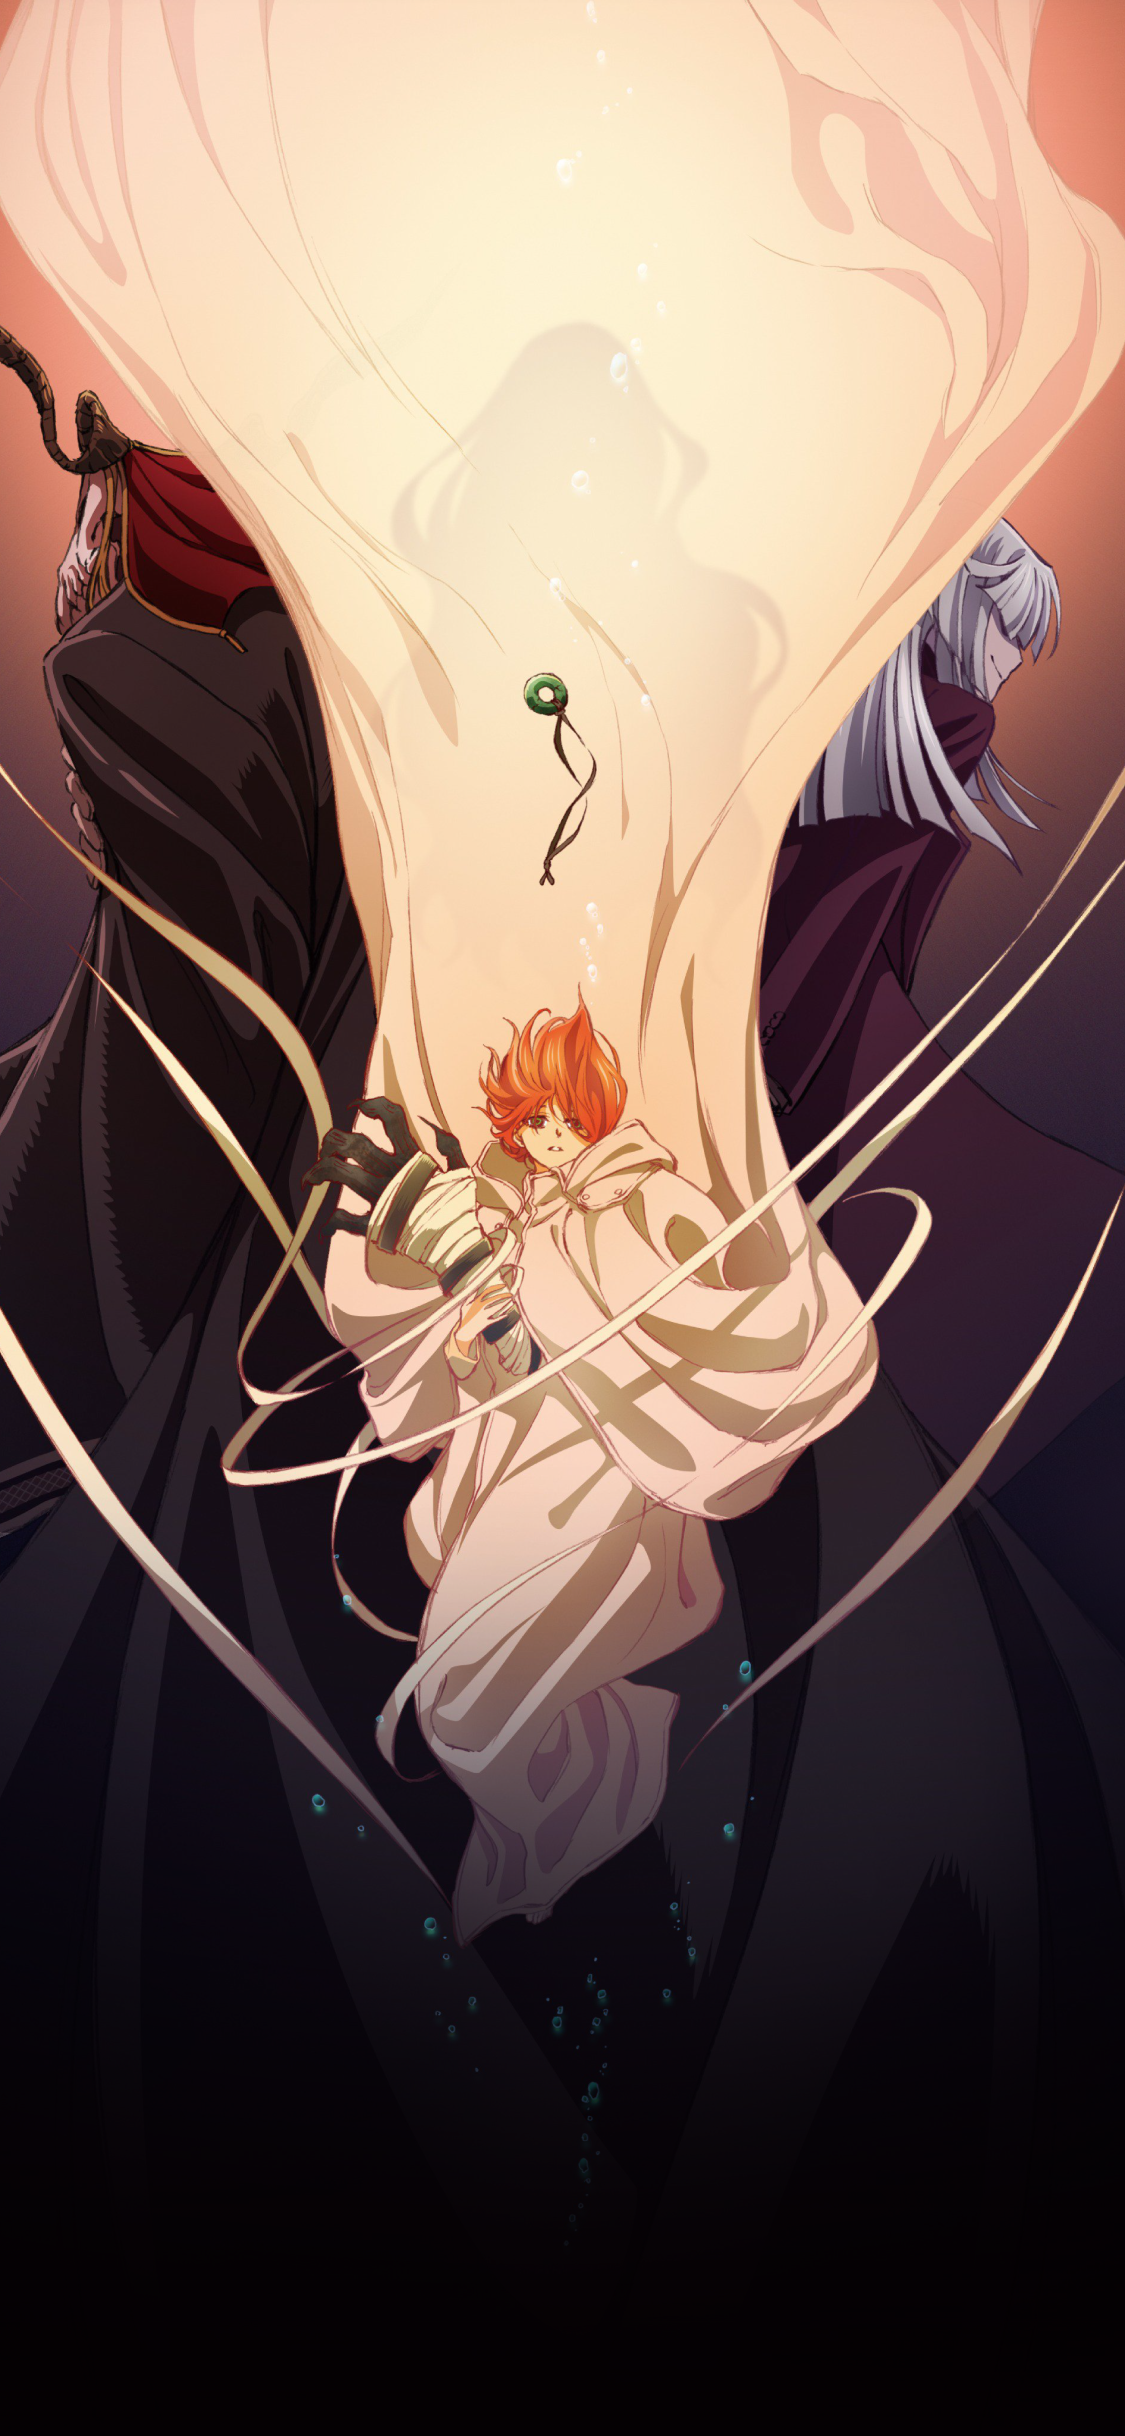 Anime The Ancient Magus Bride 1125x2436 Wallpaper Id 791510